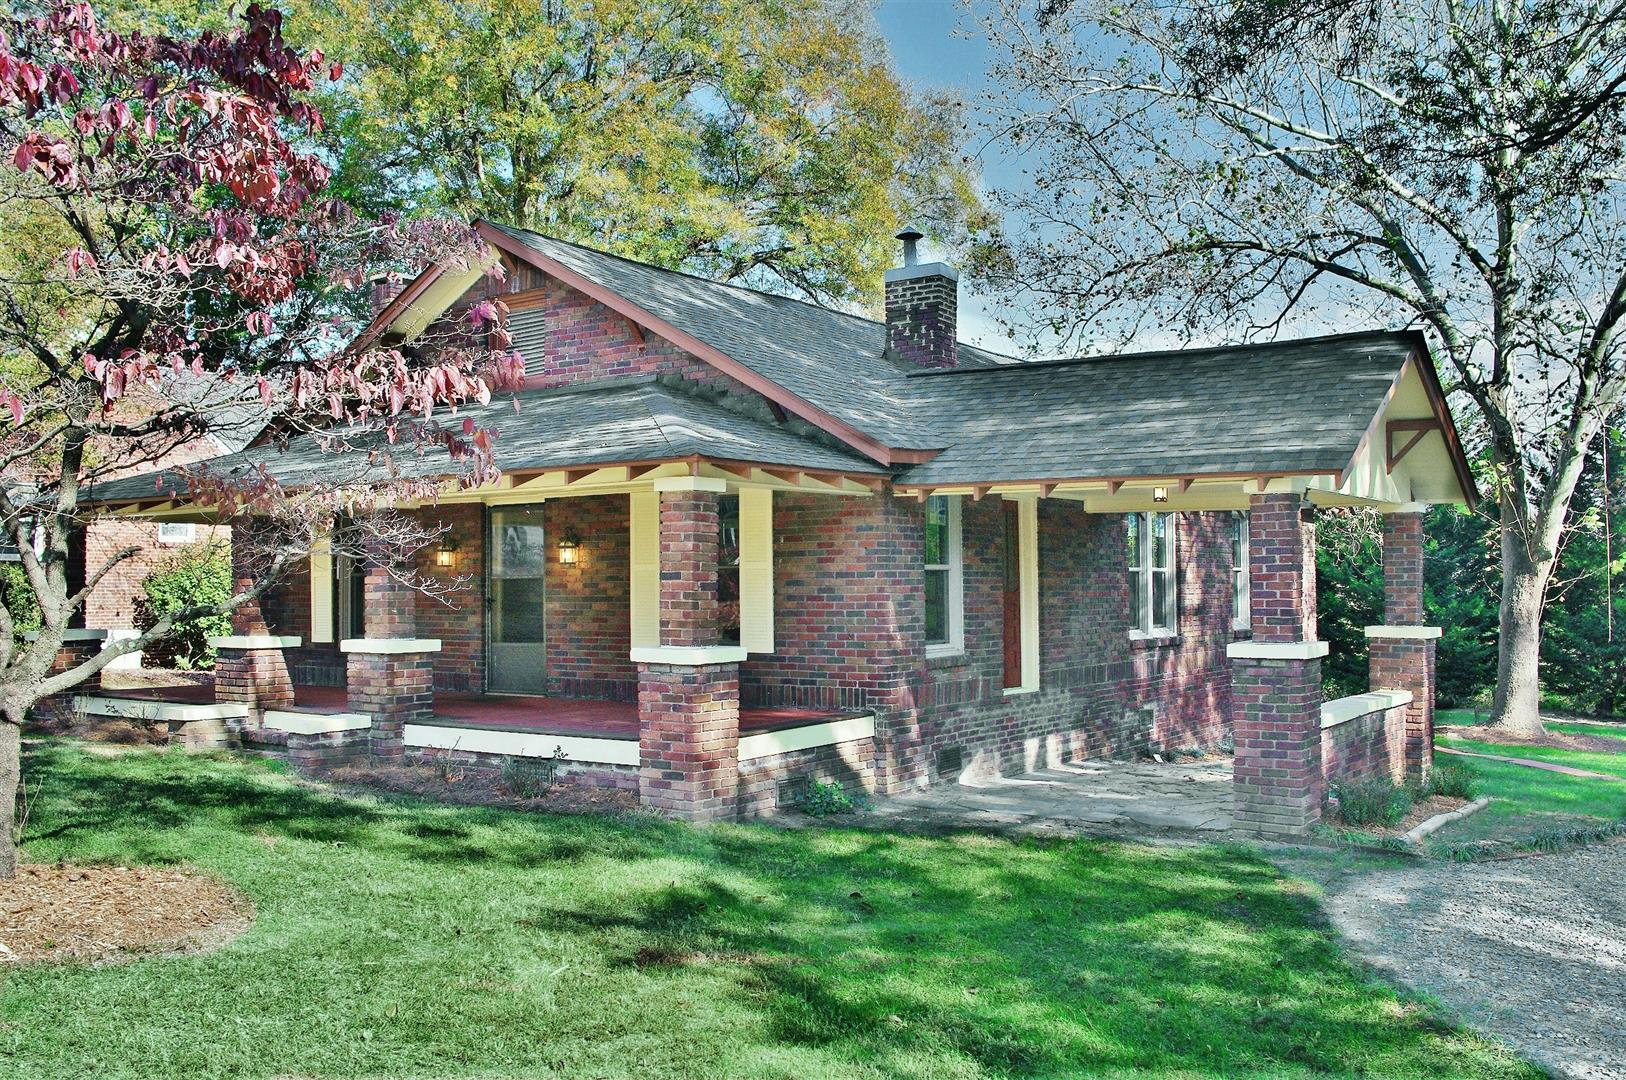 Restored 1927 Craftsman Bungalow Near Historic District In